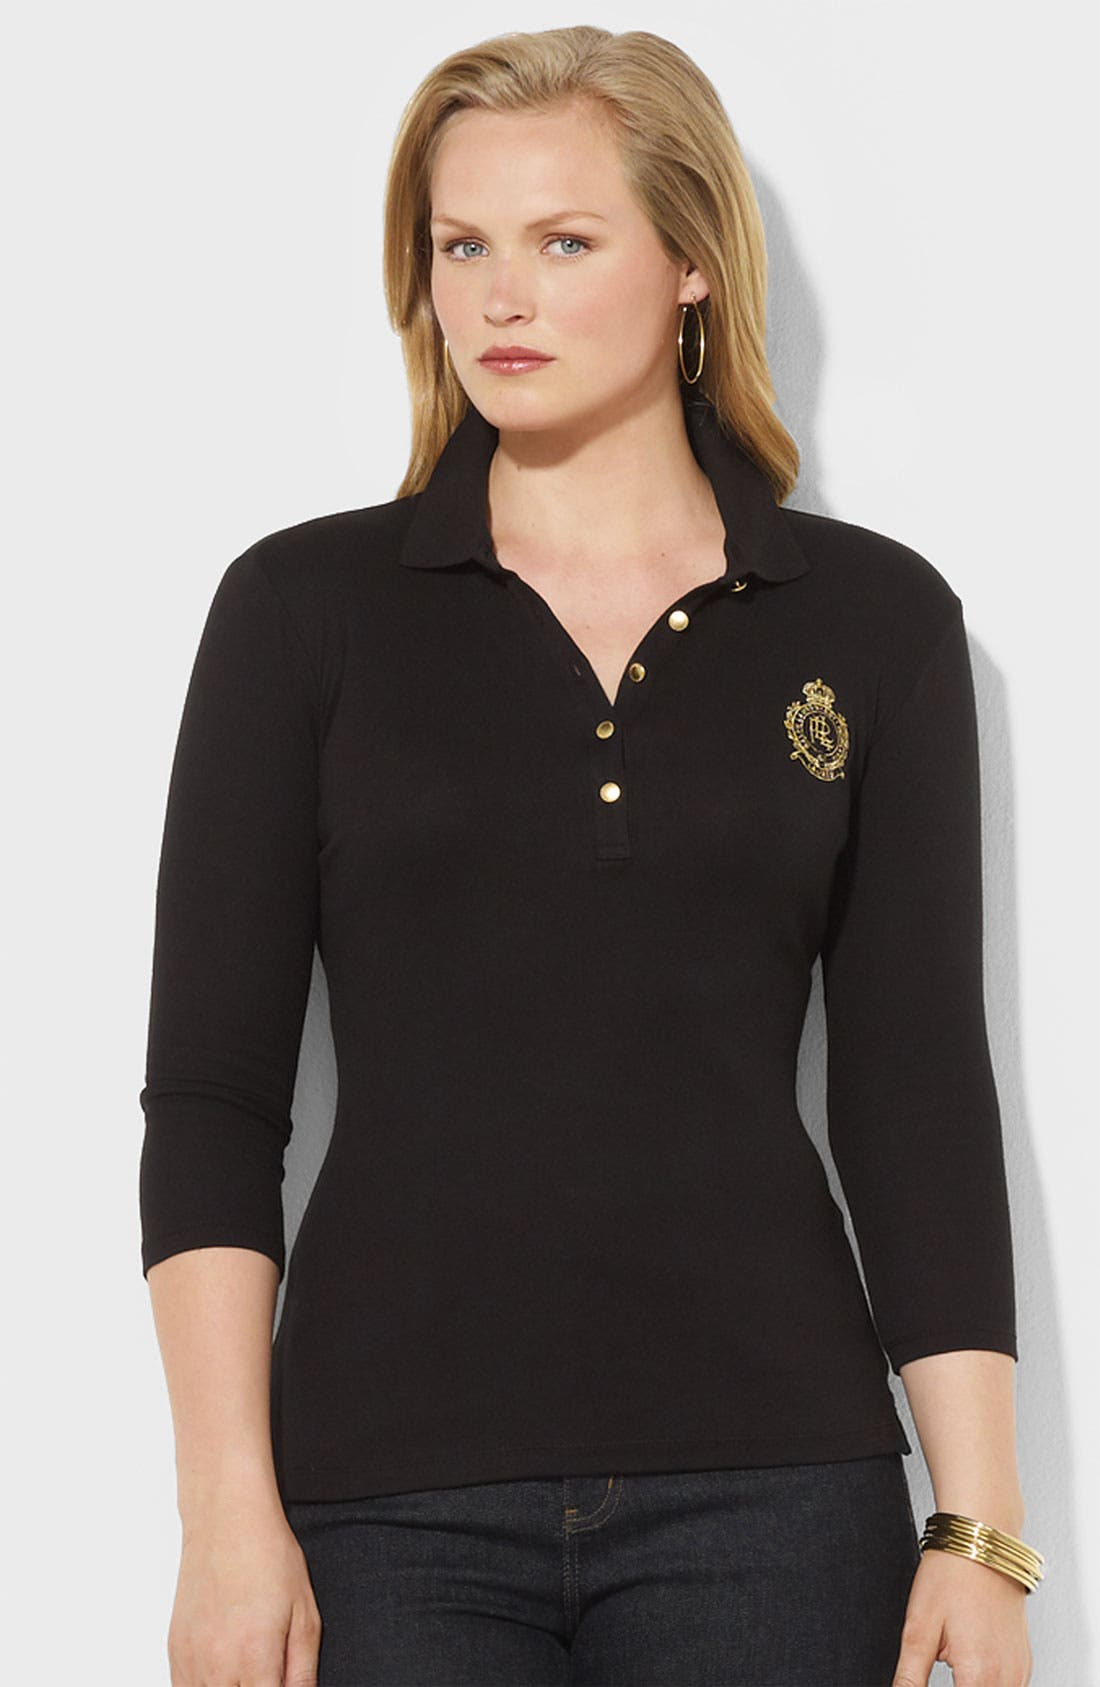 Alternate Image 1 Selected - Lauren Ralph Lauren Crest Polo (Plus)